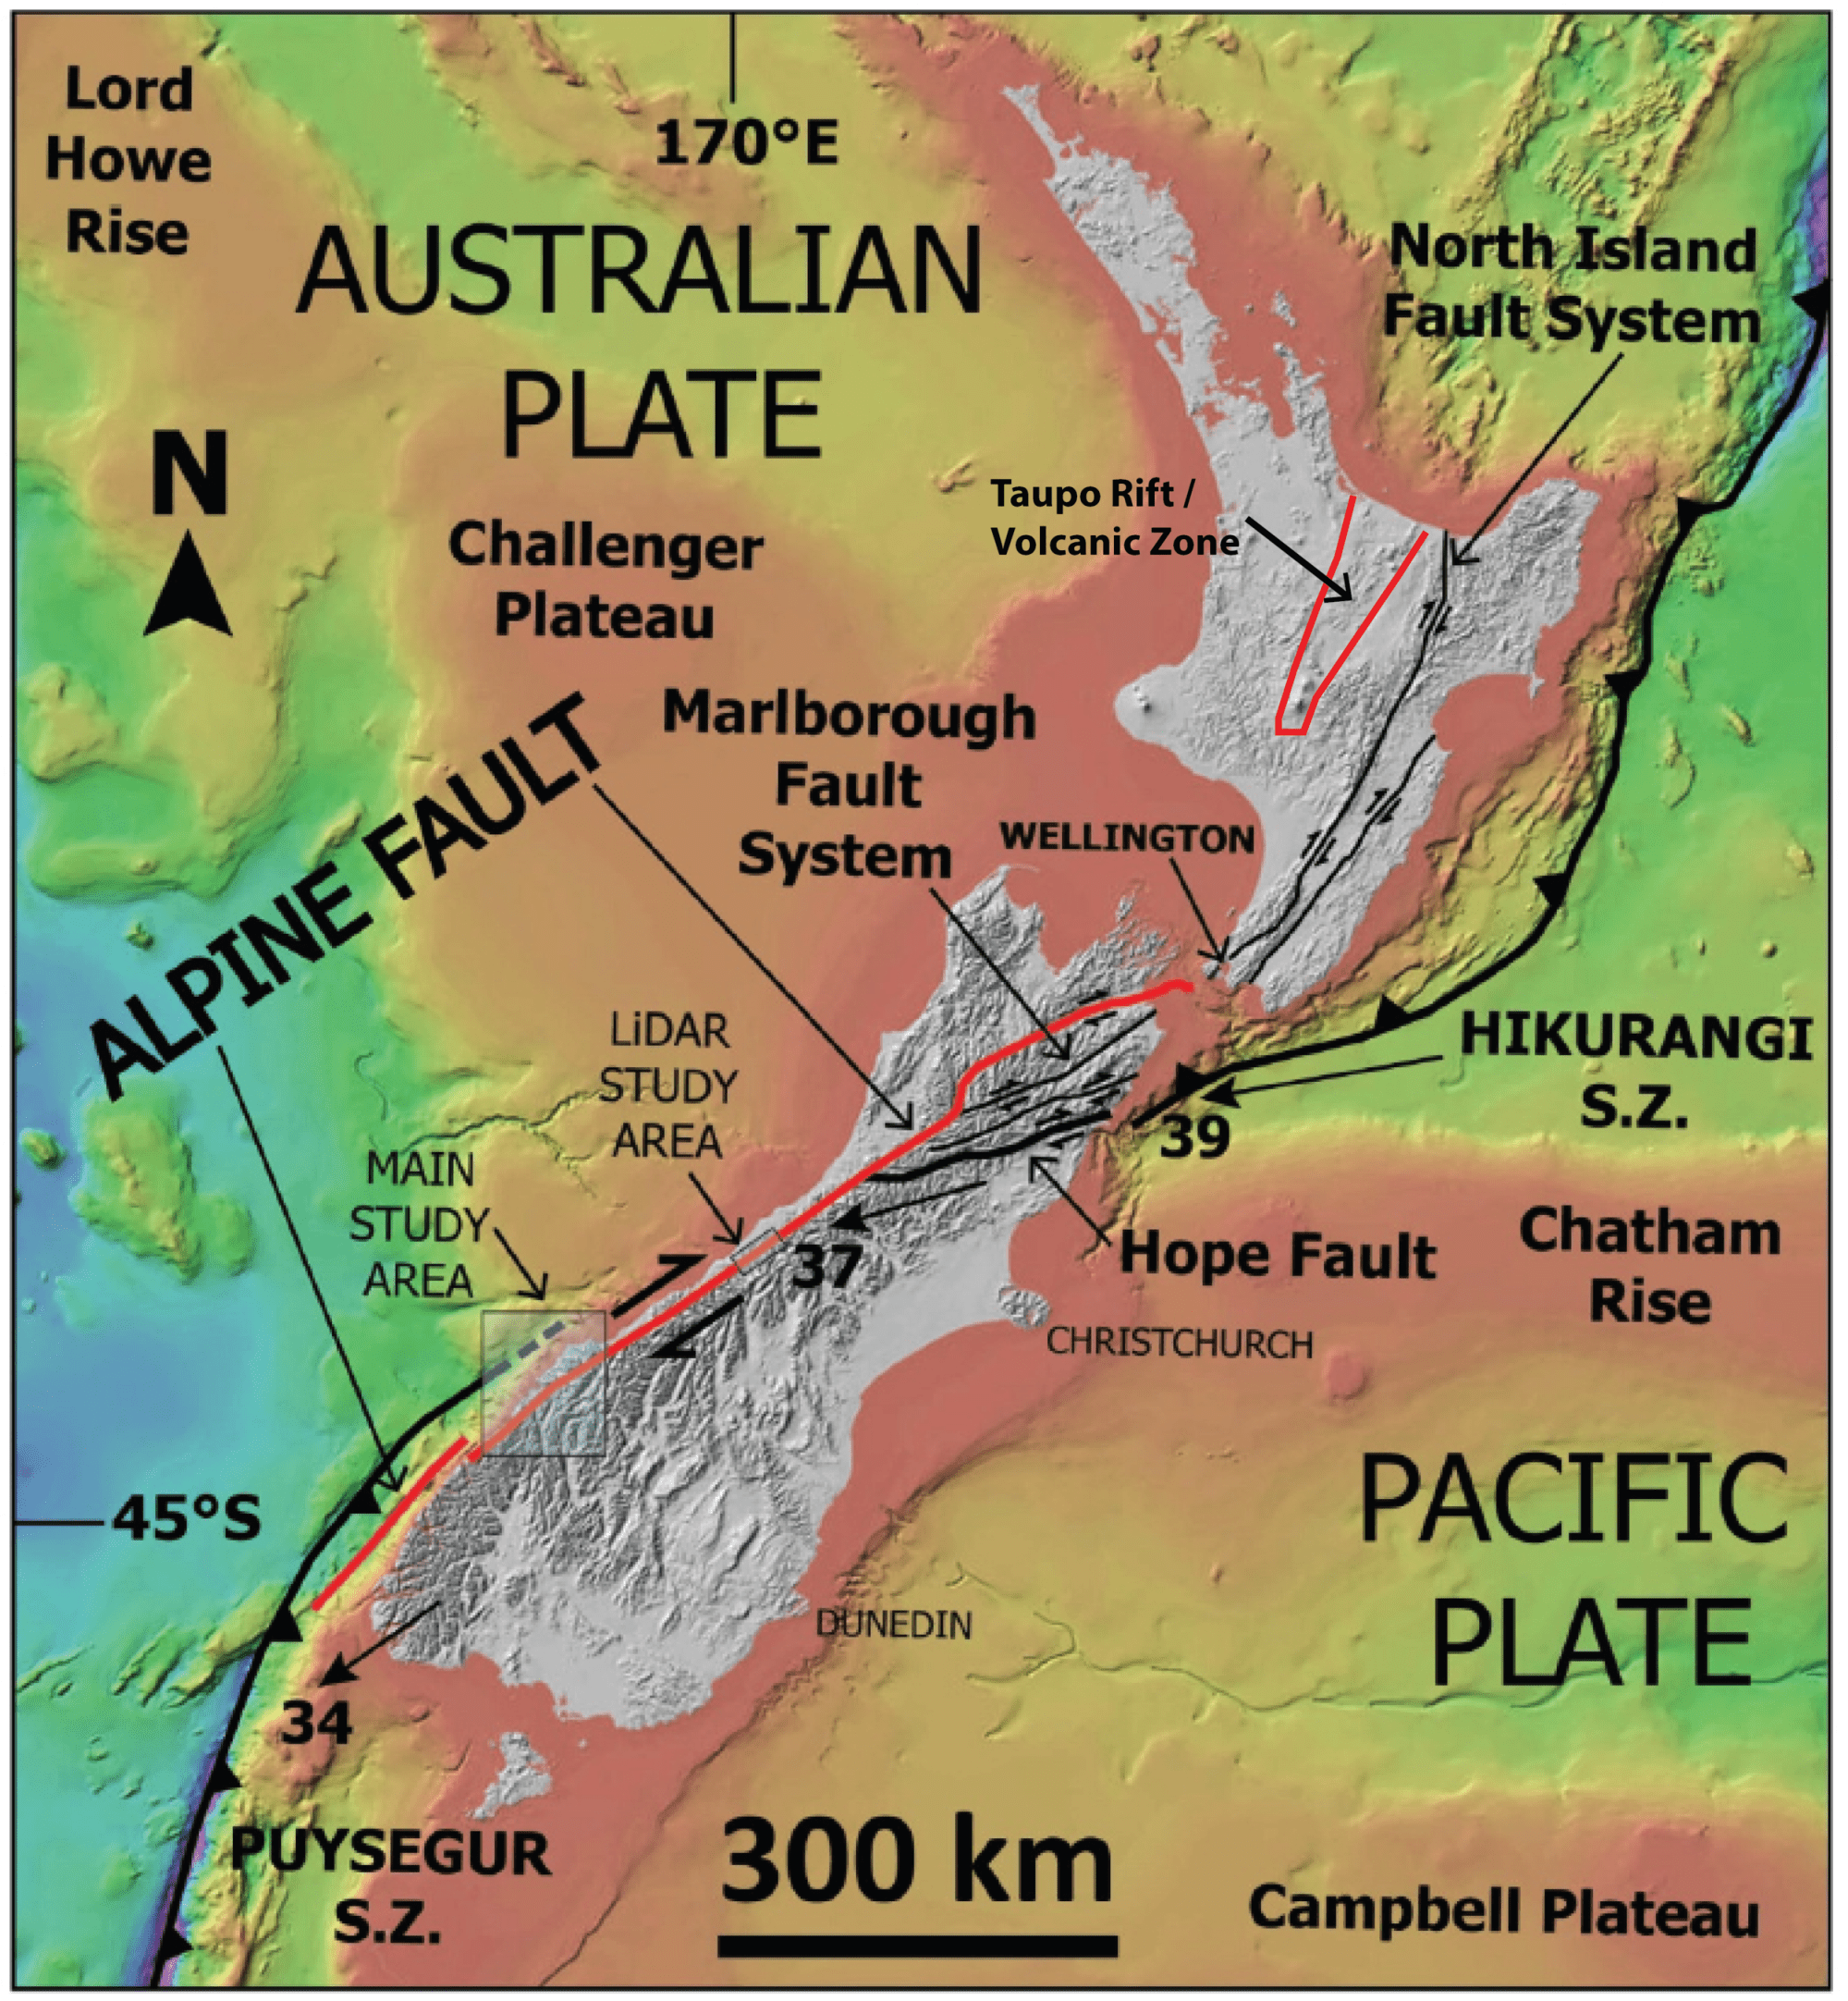 hight resolution of tectonic setting of new zealand adapted from barth 2012 showing the west